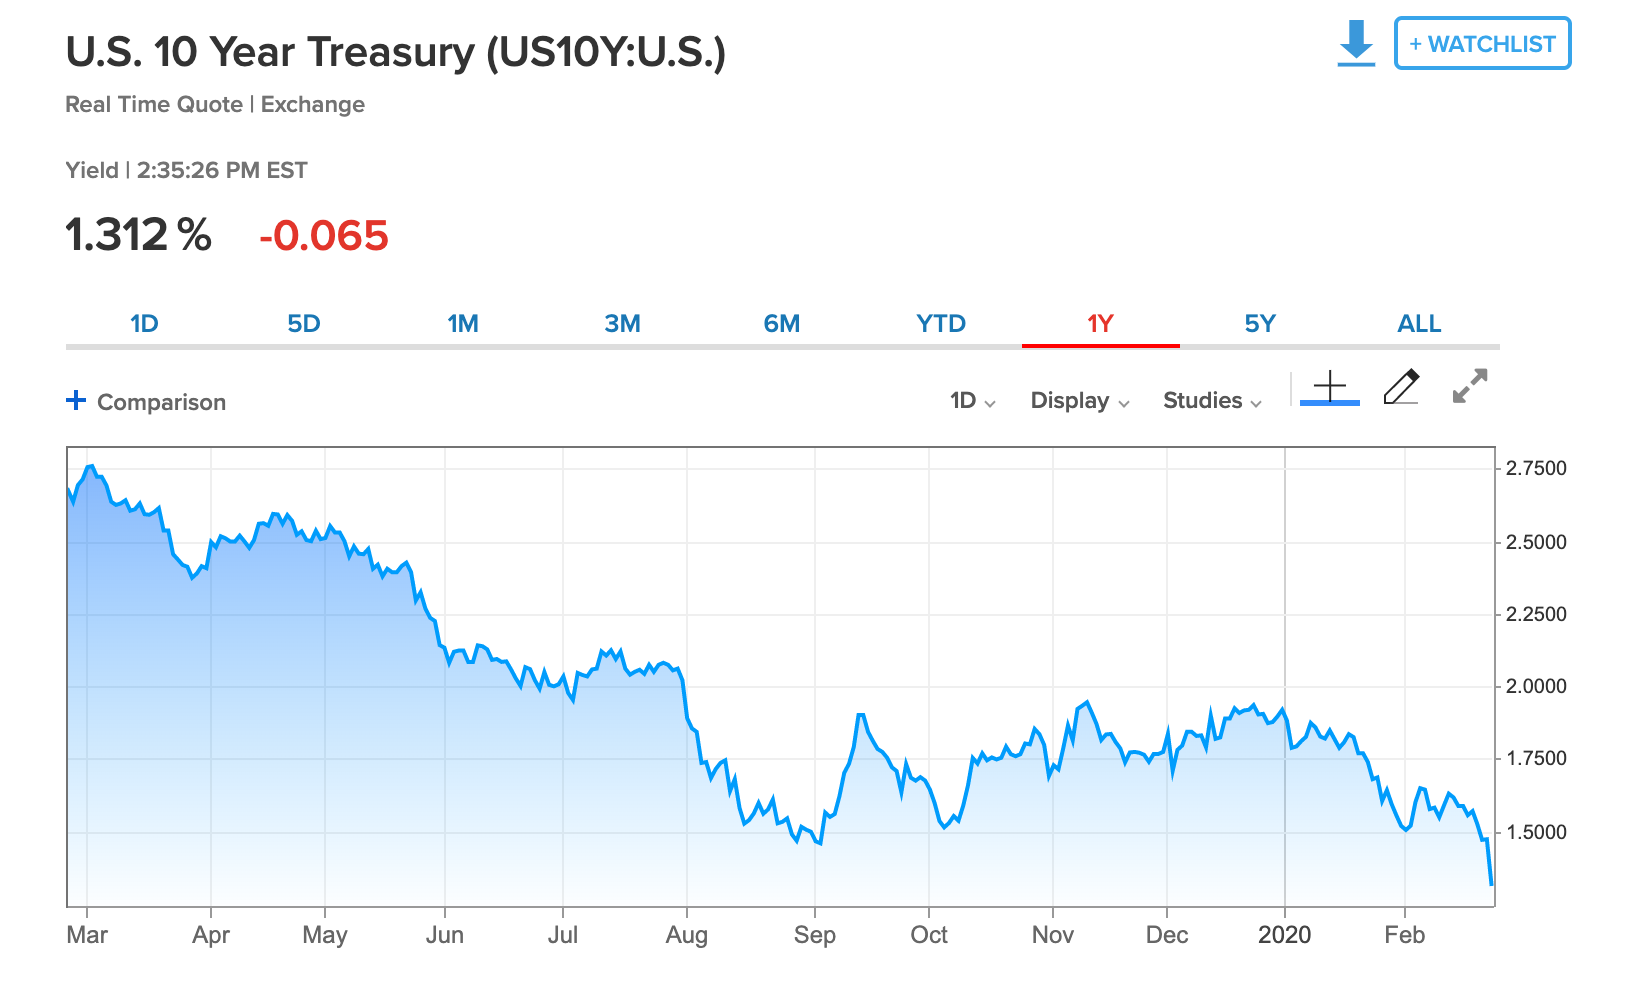 10-year treasury yield at 1.31%